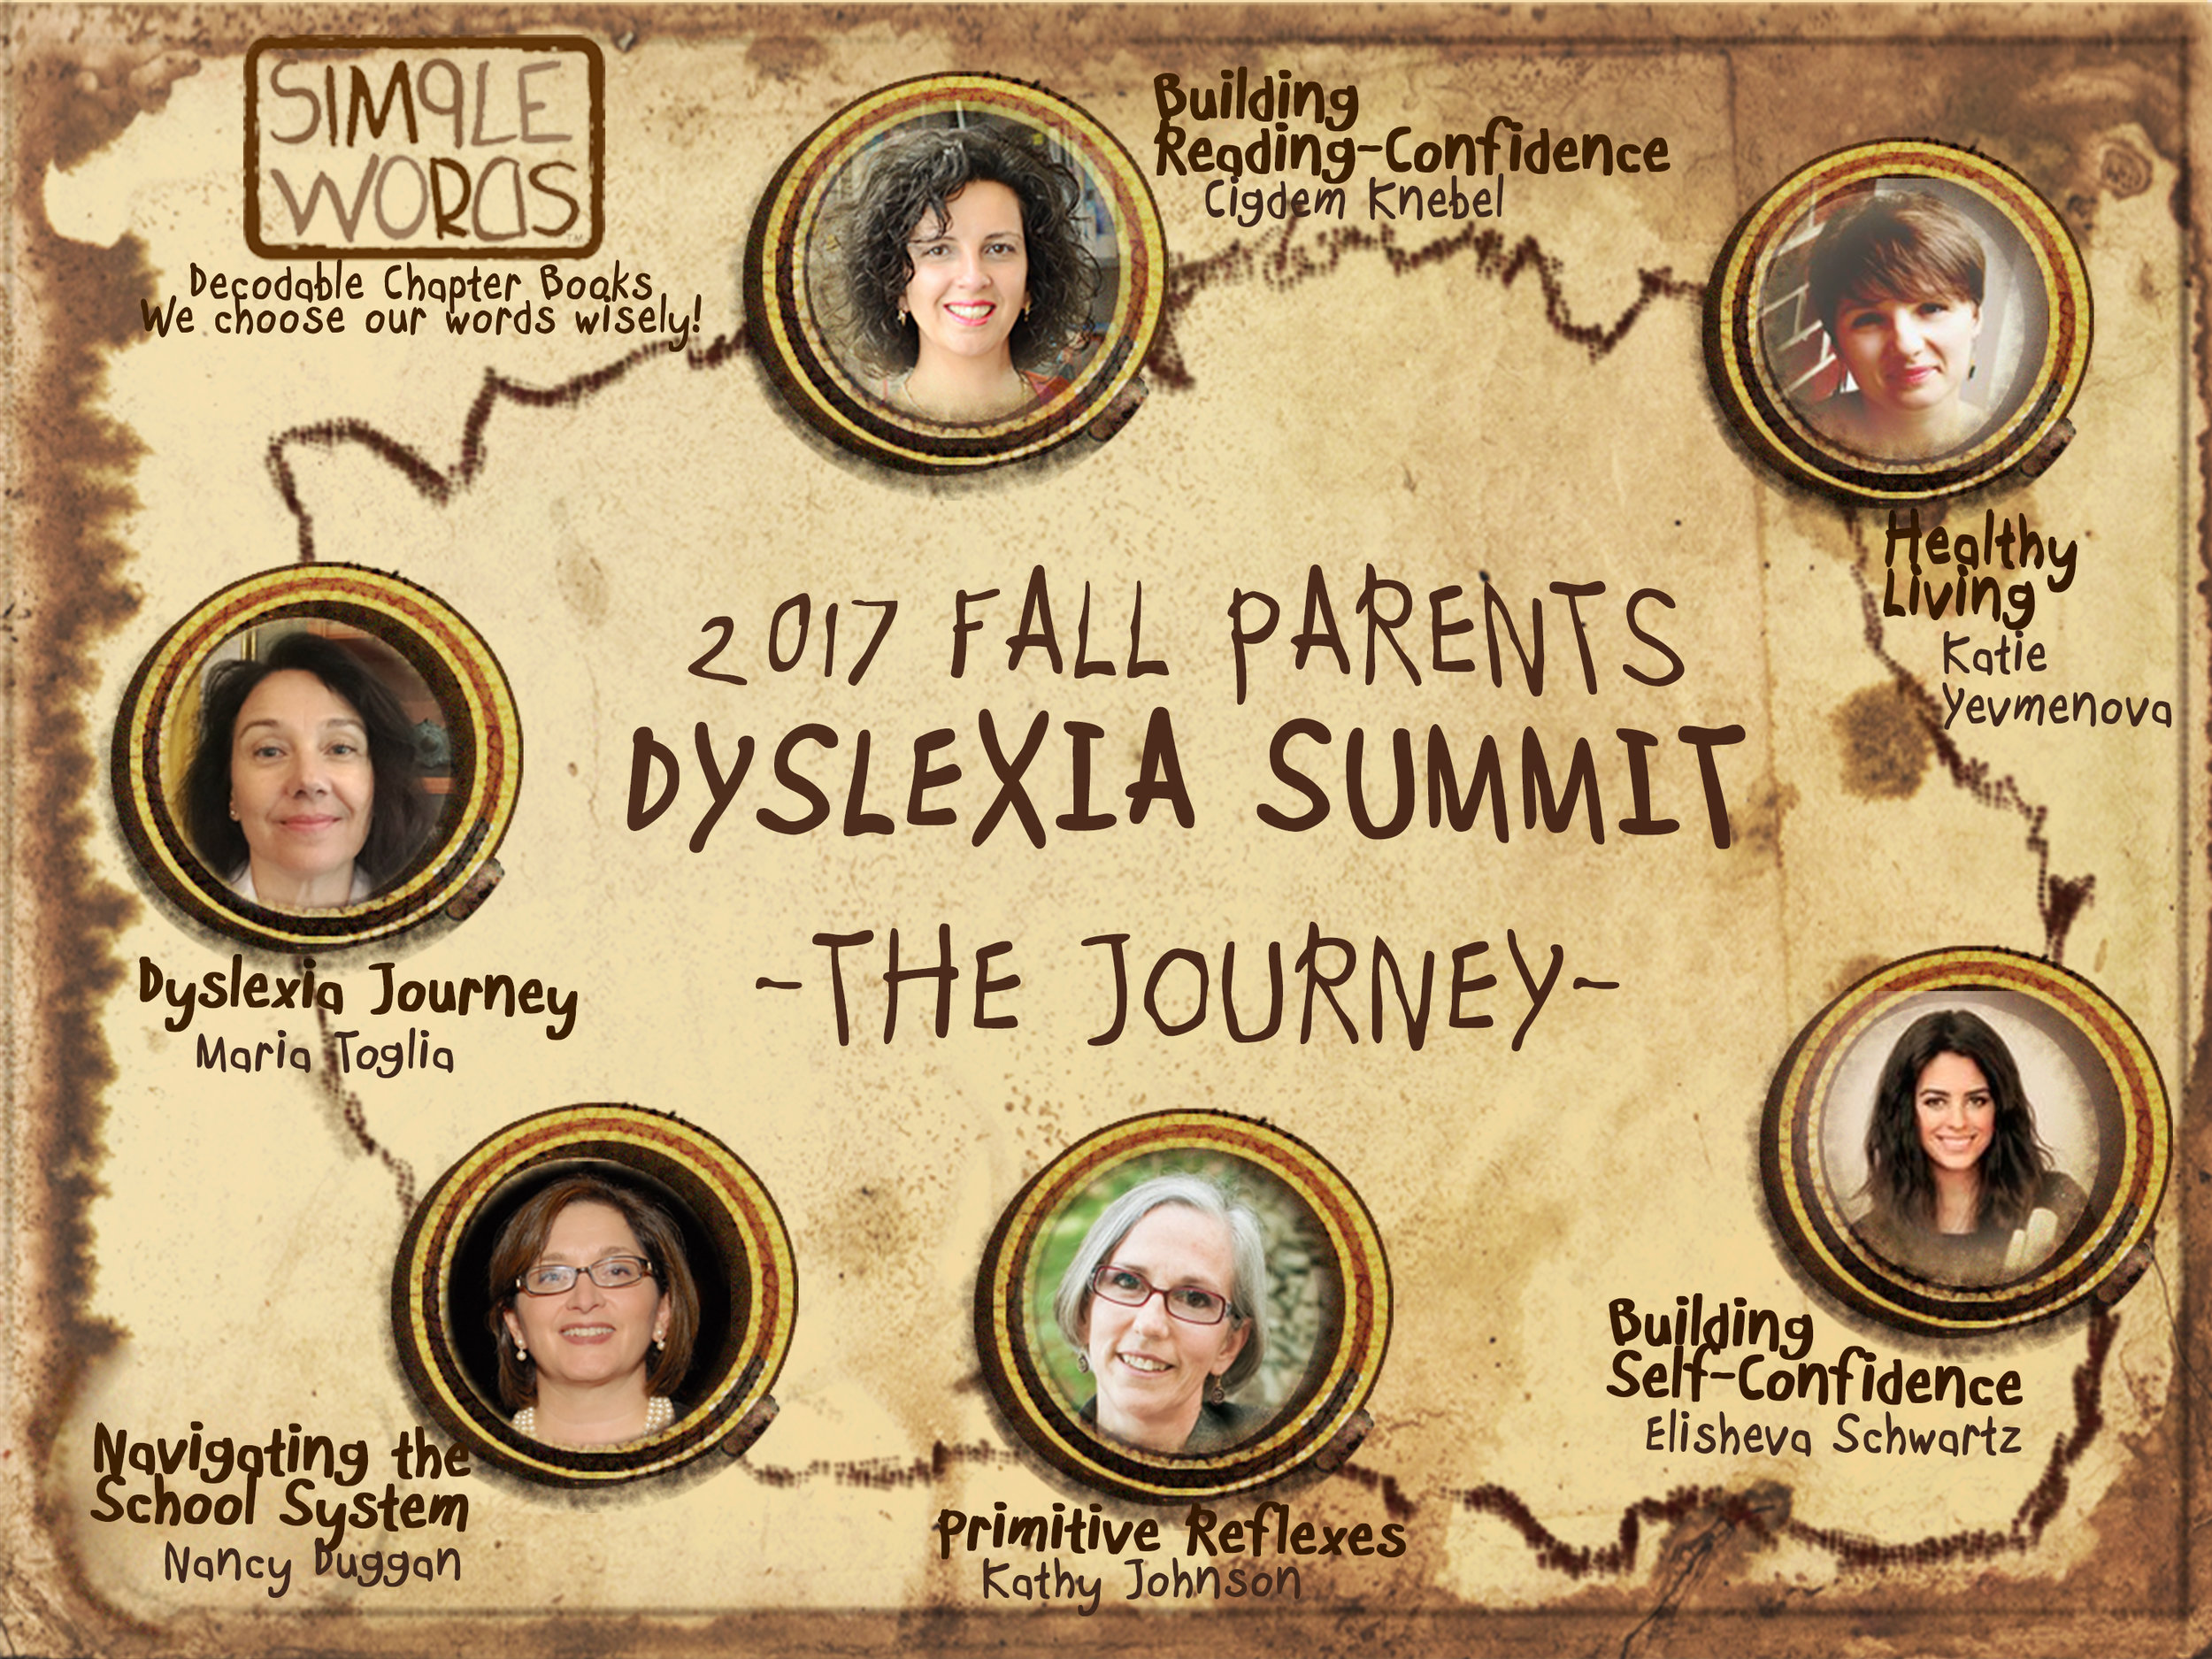 Online Dyslexia Summit Map 2017 Fall Simple Words Books